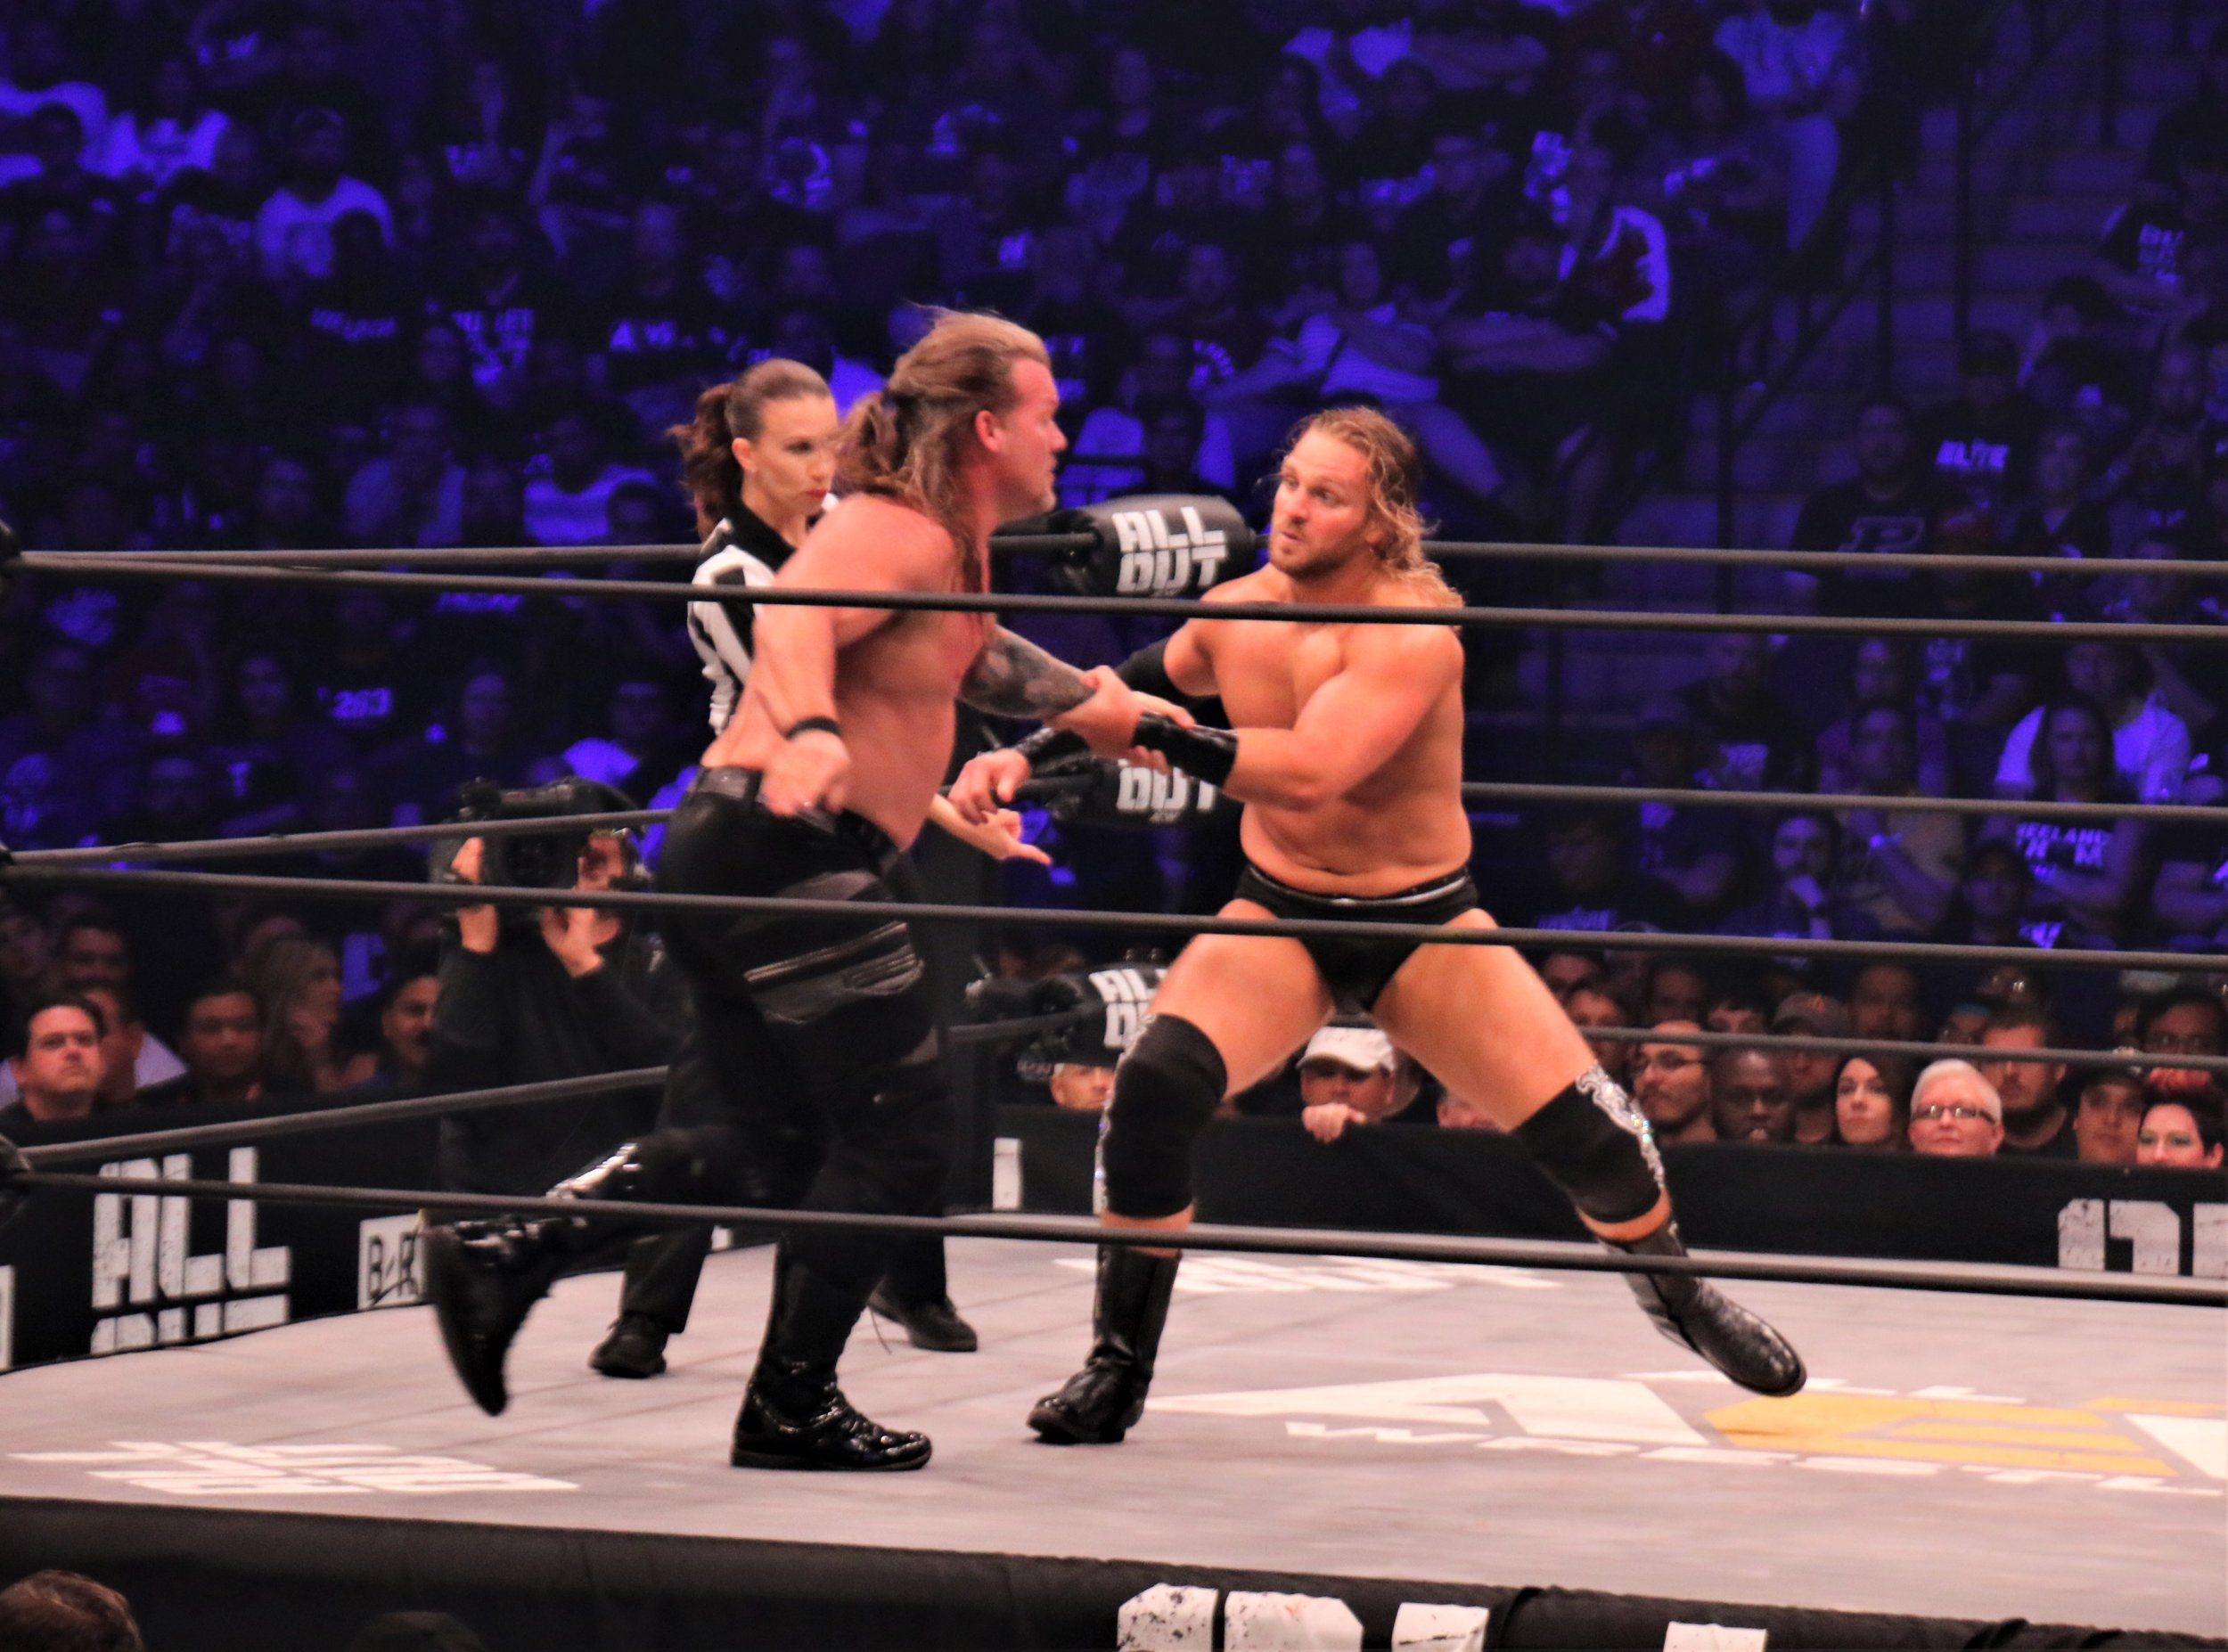 Hangman Page goes for the Irish whip on Chris Jericho.